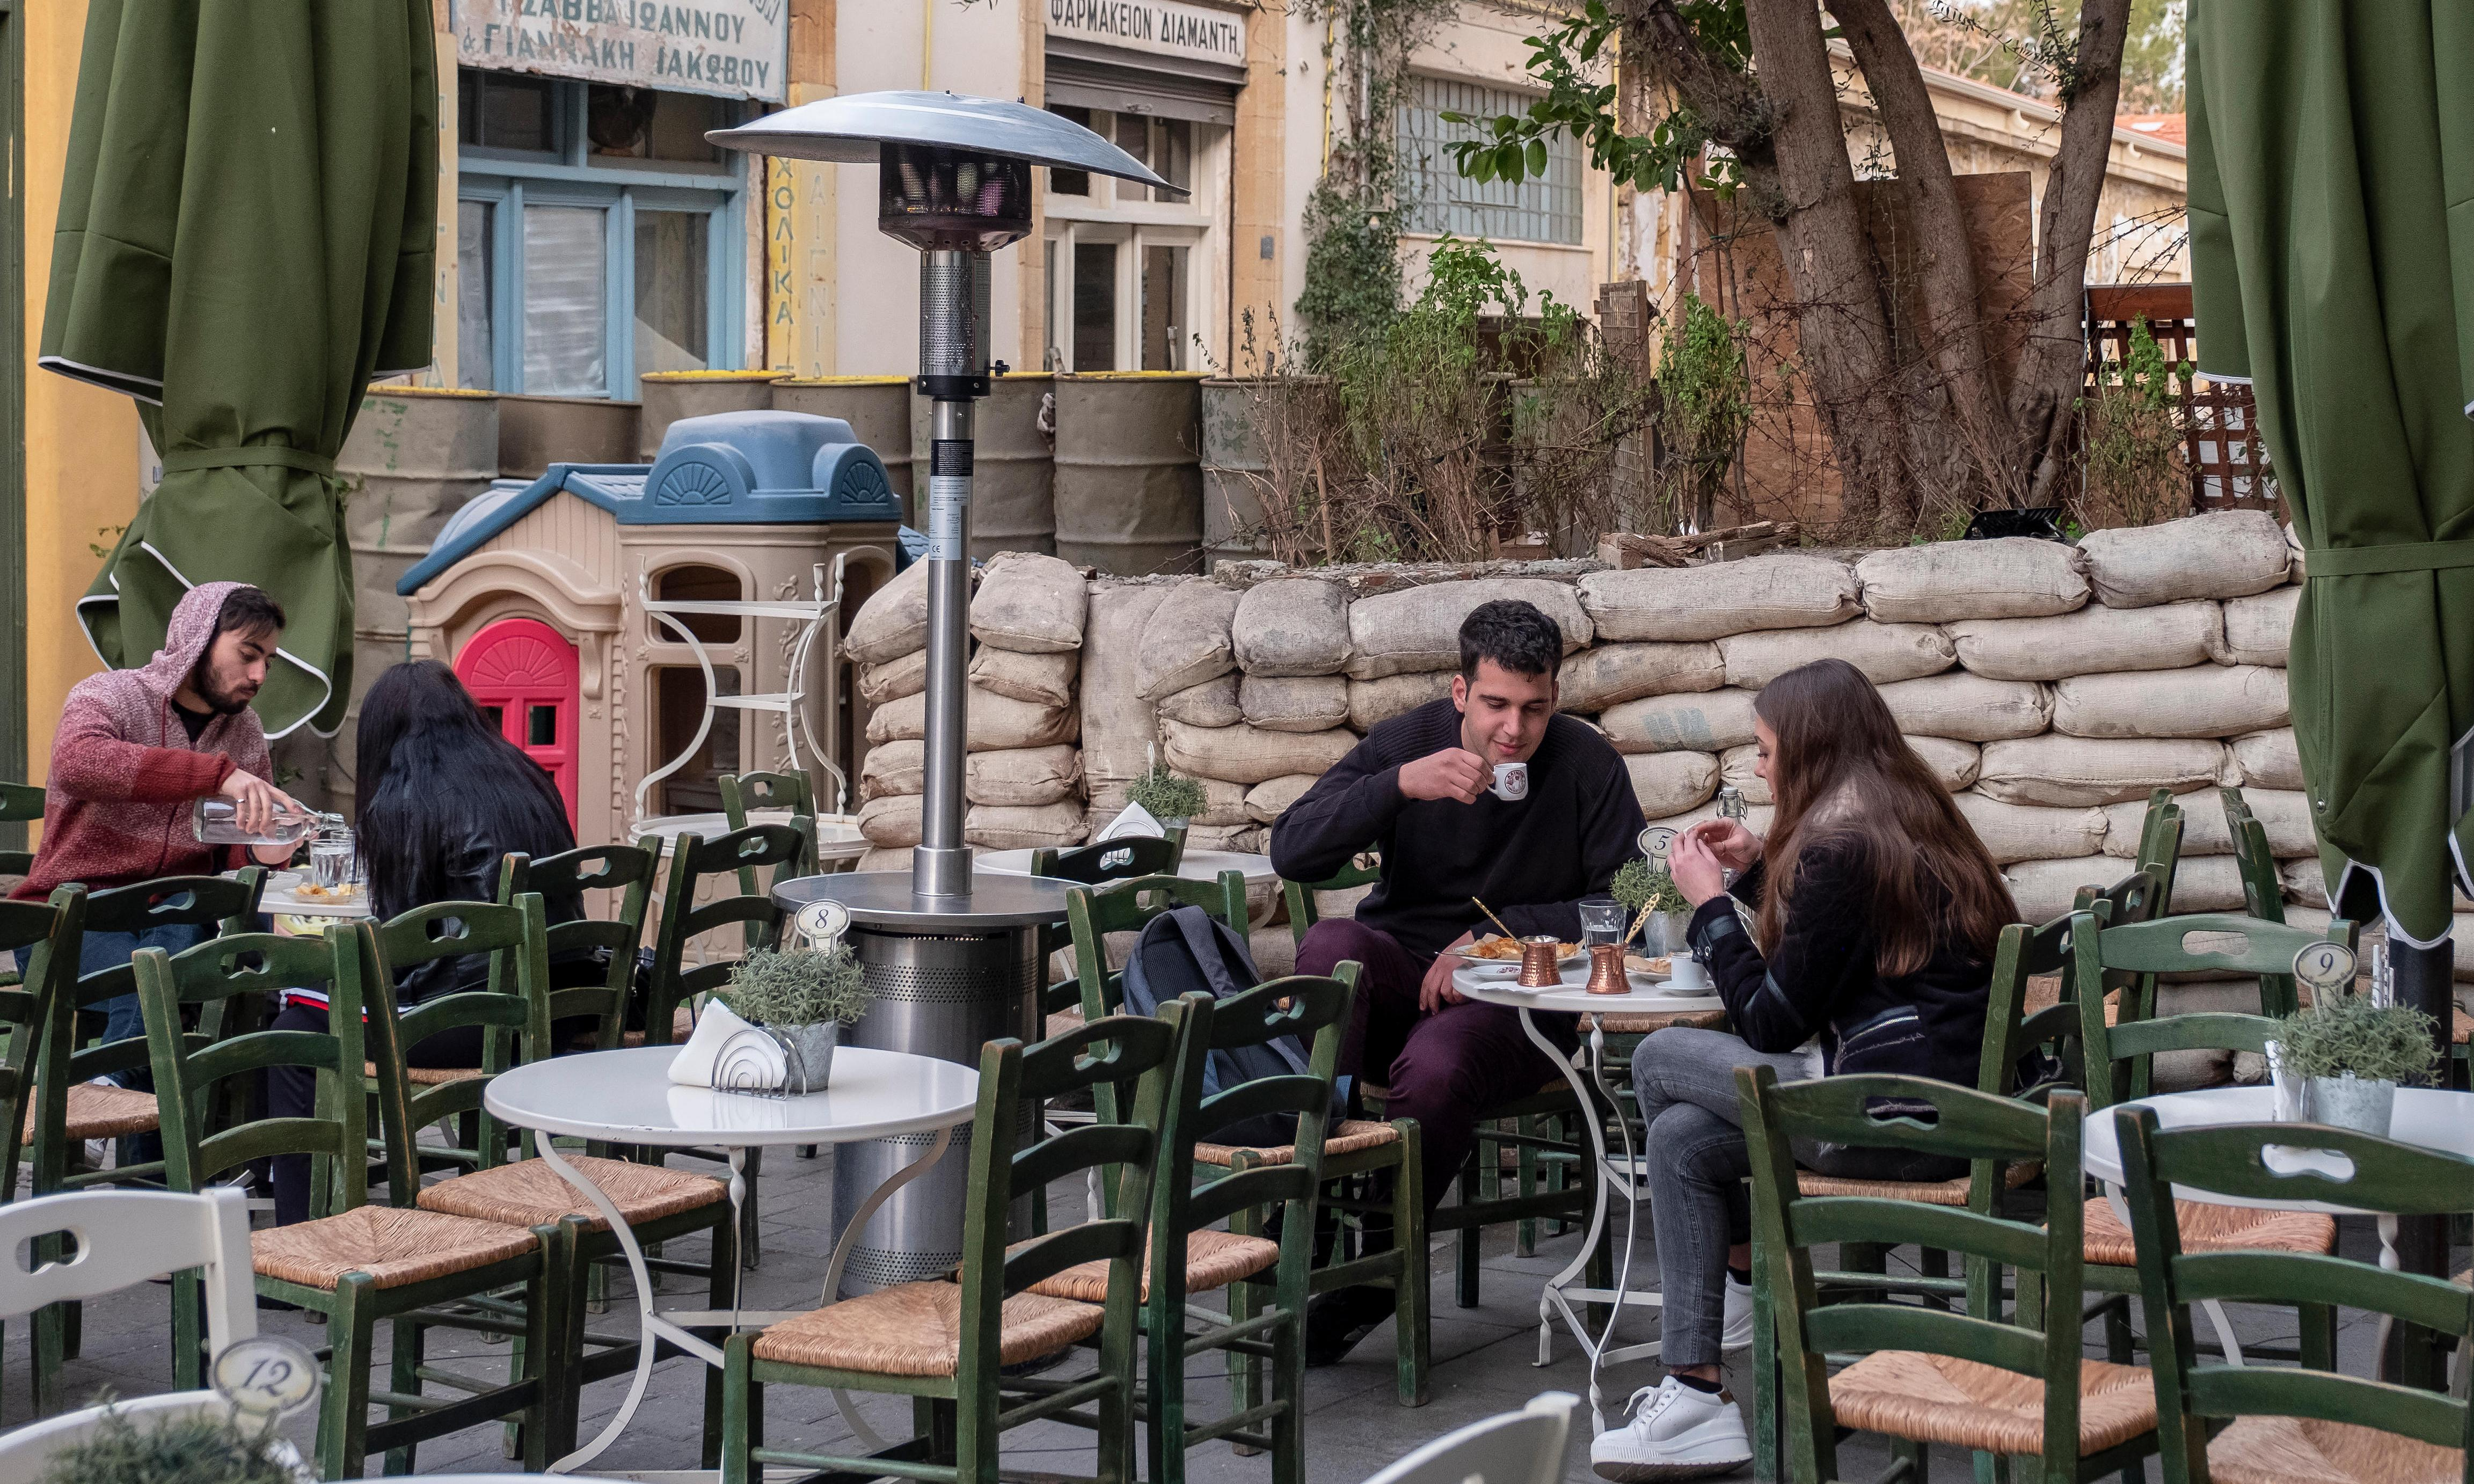 New generation of Cypriots seek to end island's division in Nicosia's 'dead zone'